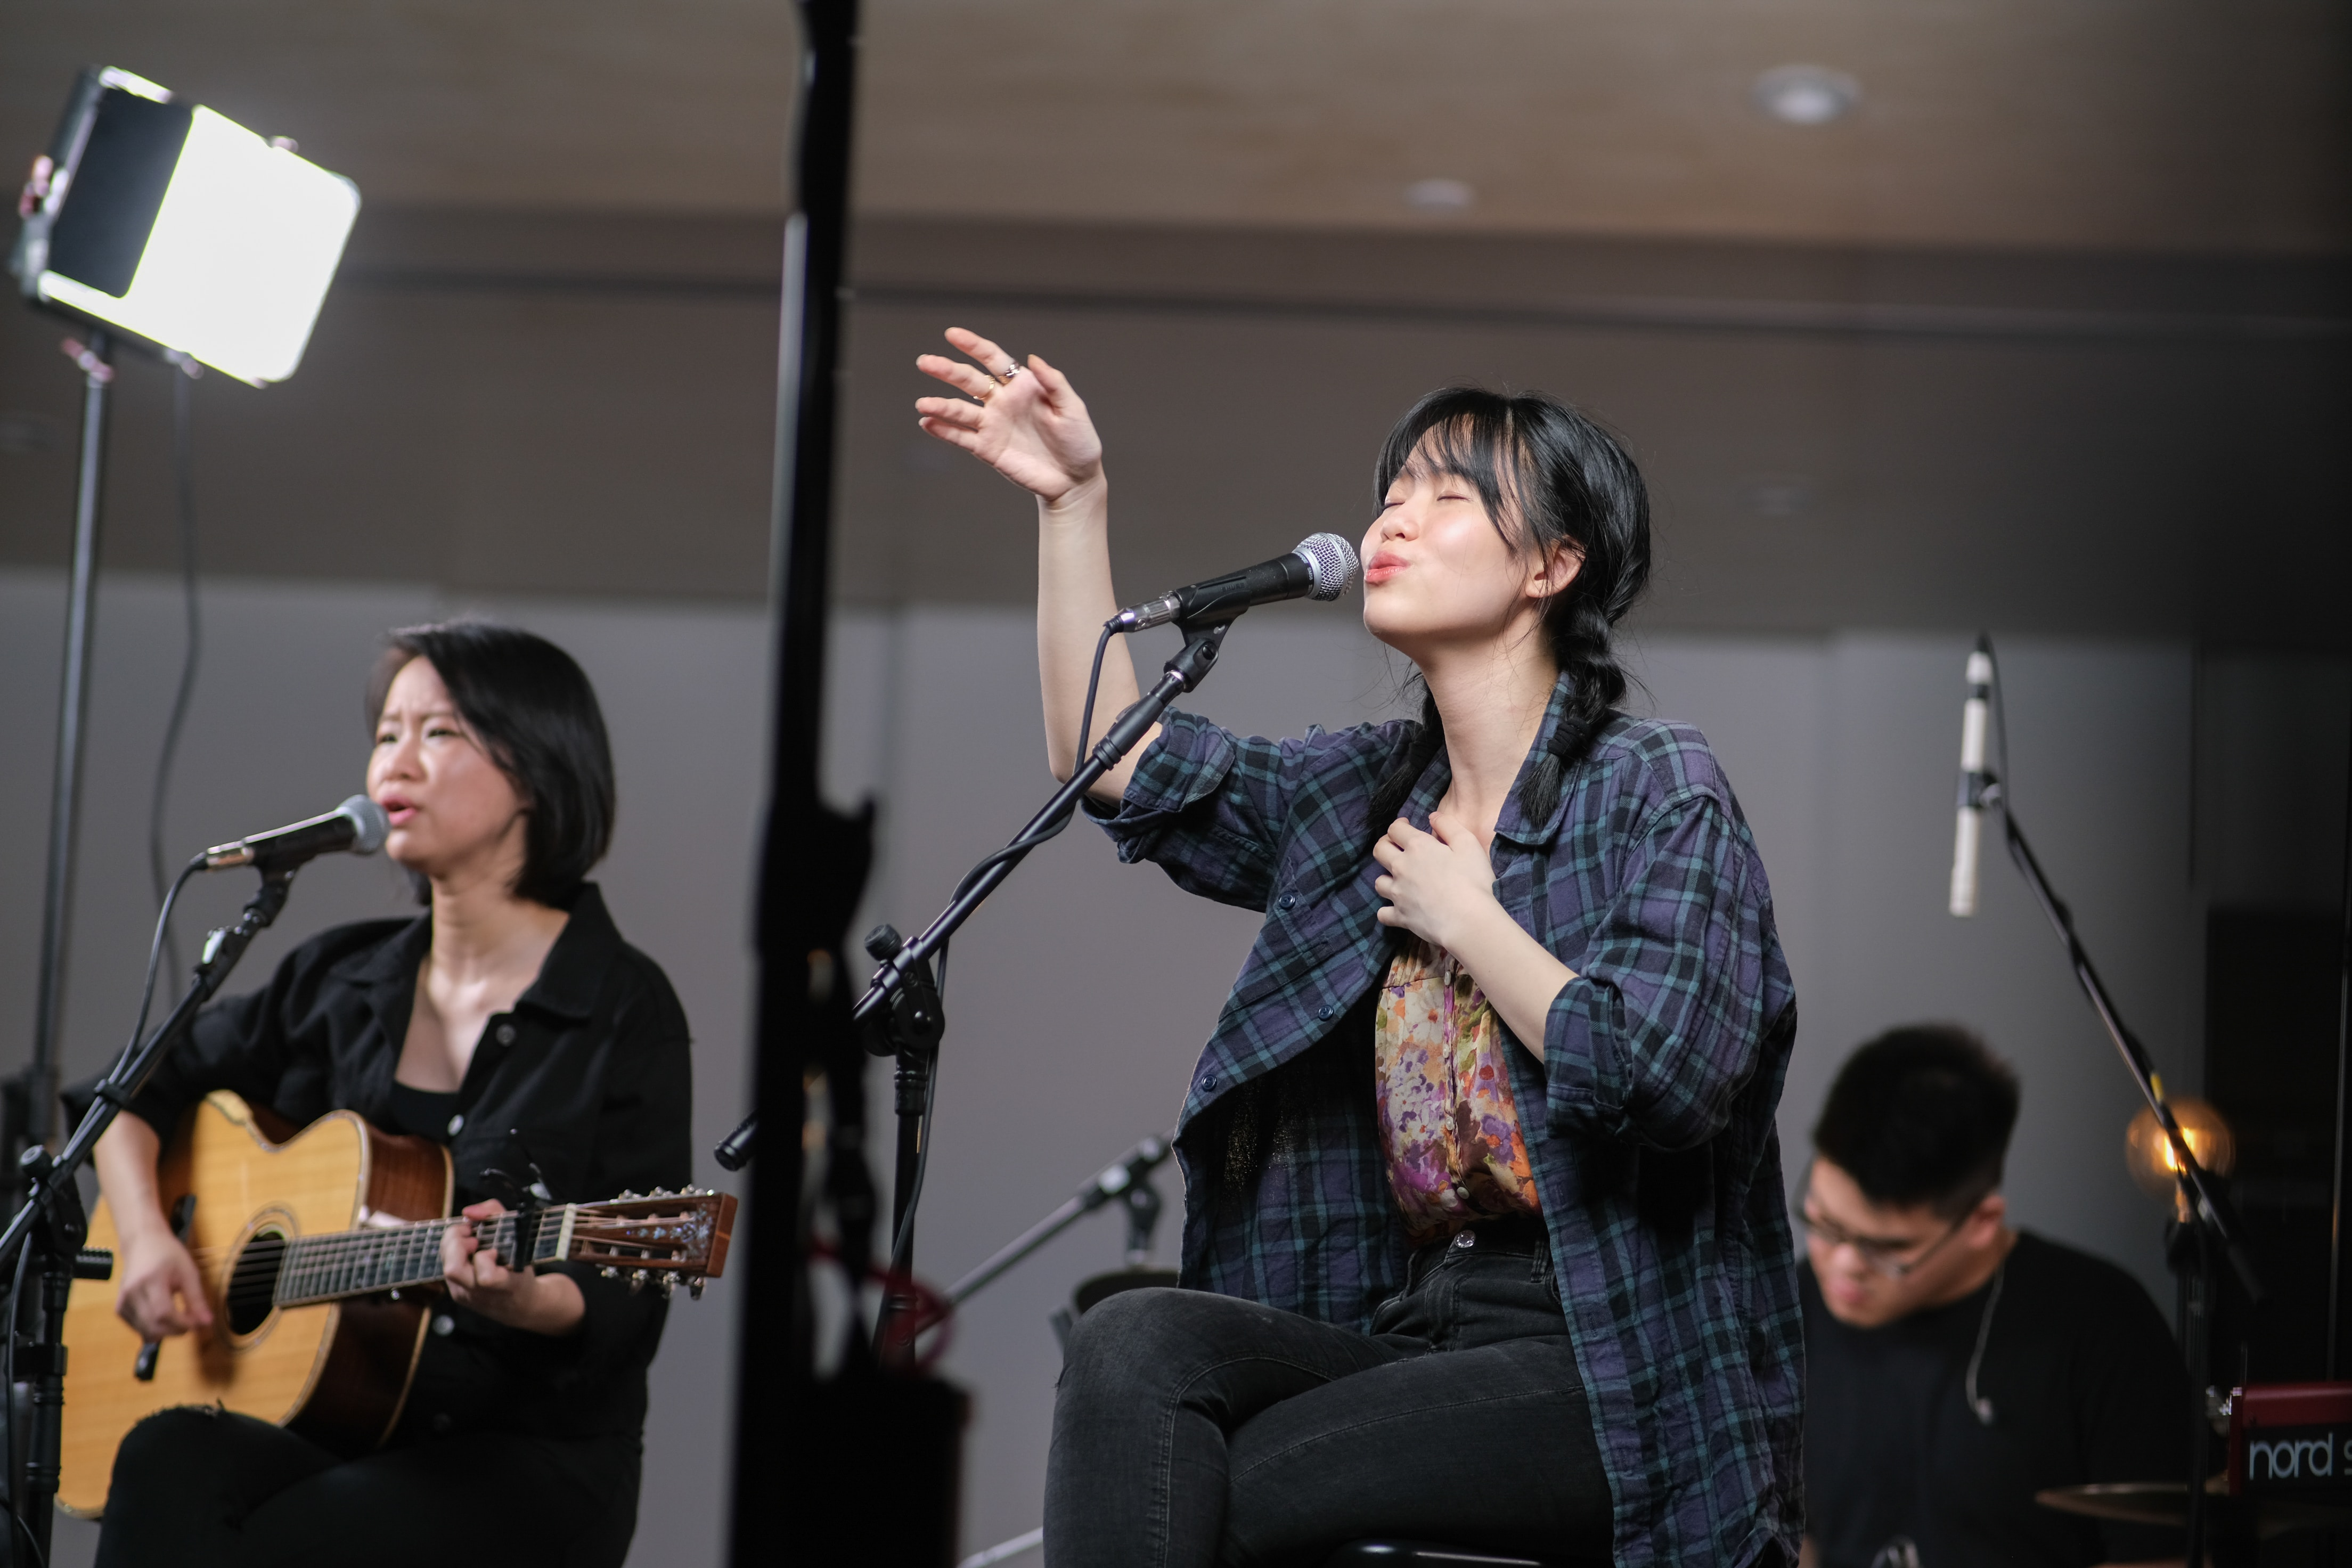 Behind the scenes filming of worship set in a church in KL.